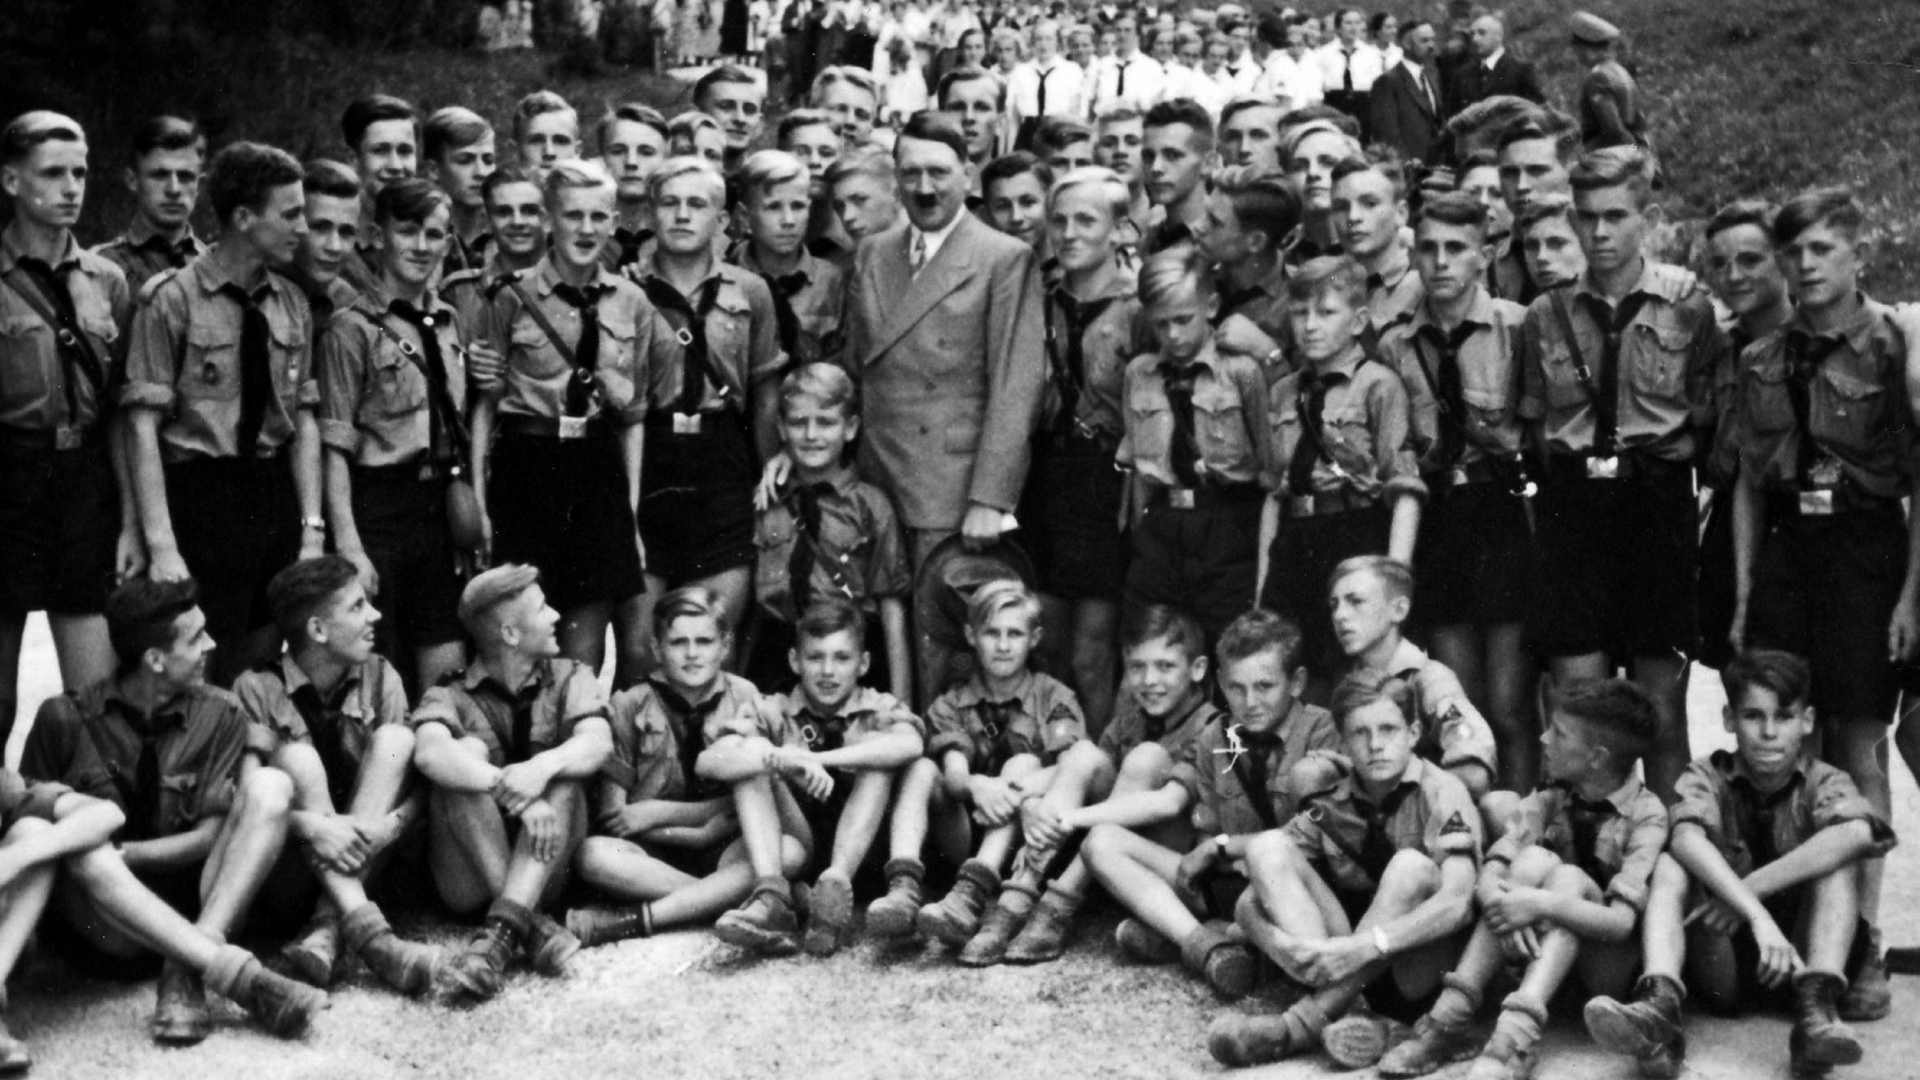 the history of the nazi party On 5th january 1919, anton drexler together with gottfried feder and dietrich eckart founded the deutsche arbeiterpartei dap (german workers' party) drexl.